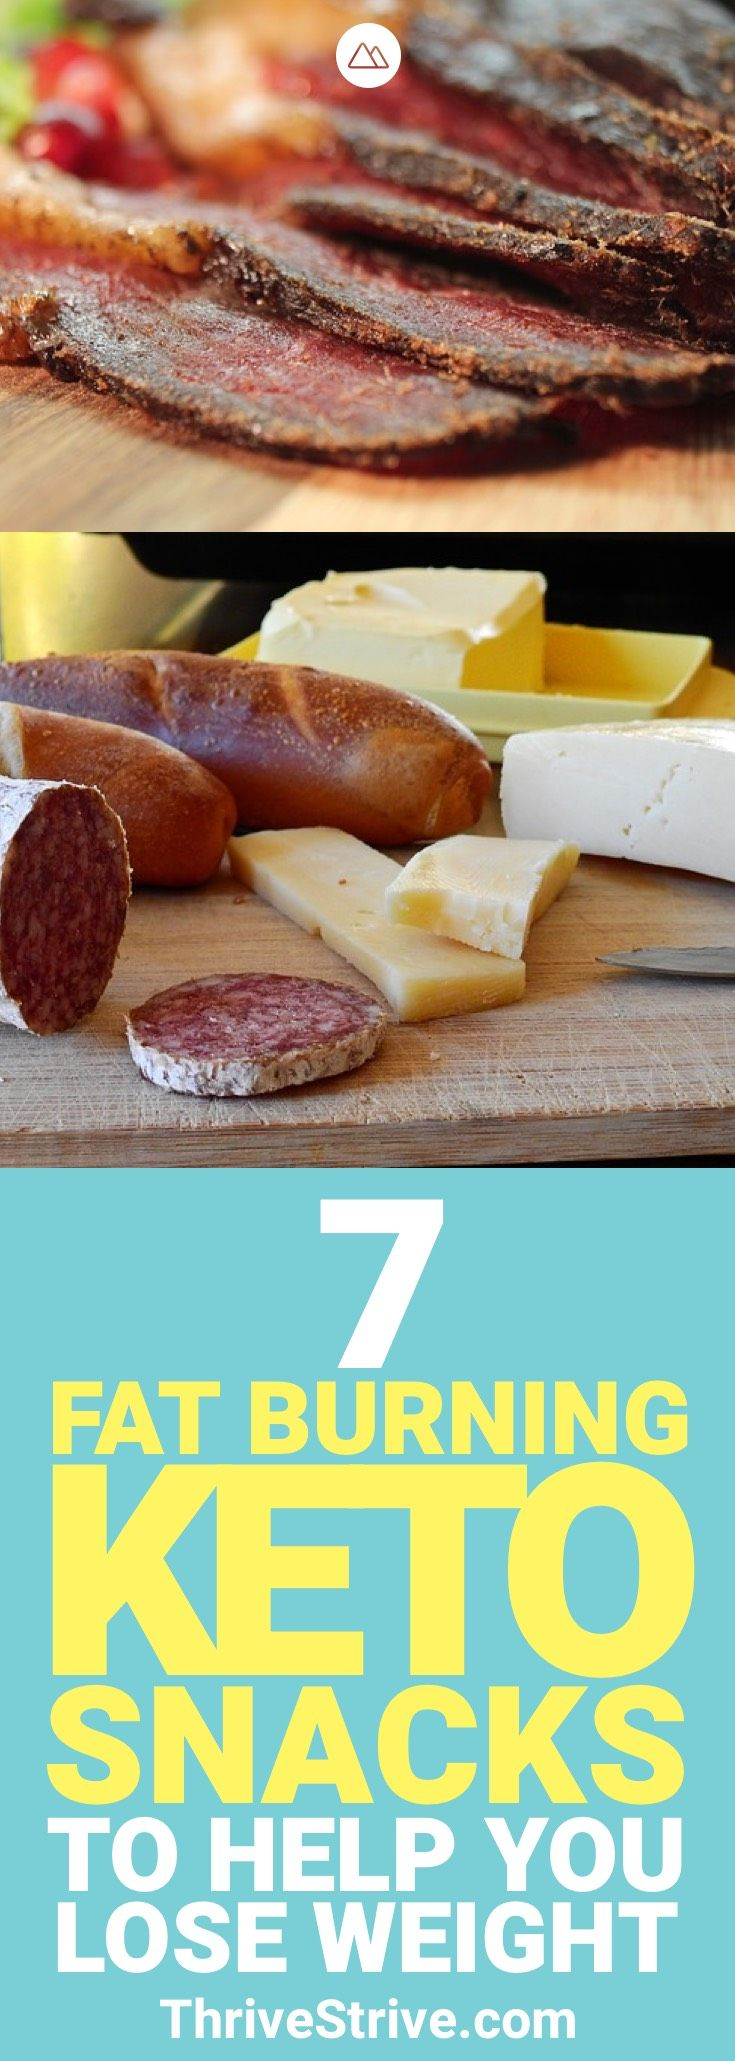 Late night snacks can make a huge difference when it comes to losing weight on a ketogenic diet. Eating the right snacks can speed up the weight loss process. Here are 7 keto snacks you can have at night to help you lose weight.